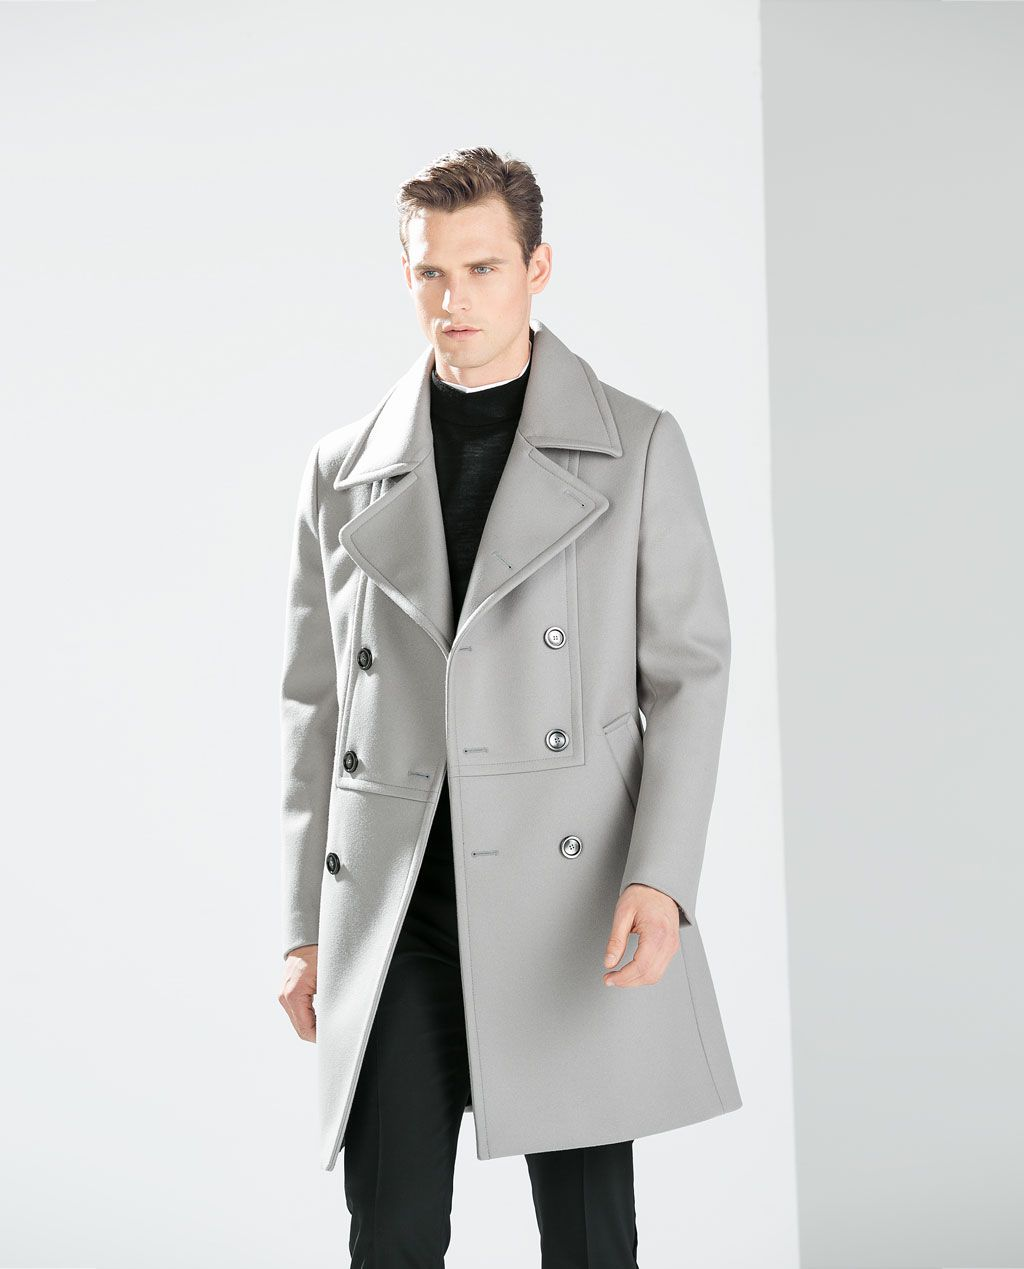 2c833aa5 ZARA - MAN - GREY DOUBLE-BREASTED COAT | Ways to dress up in 2019 ...